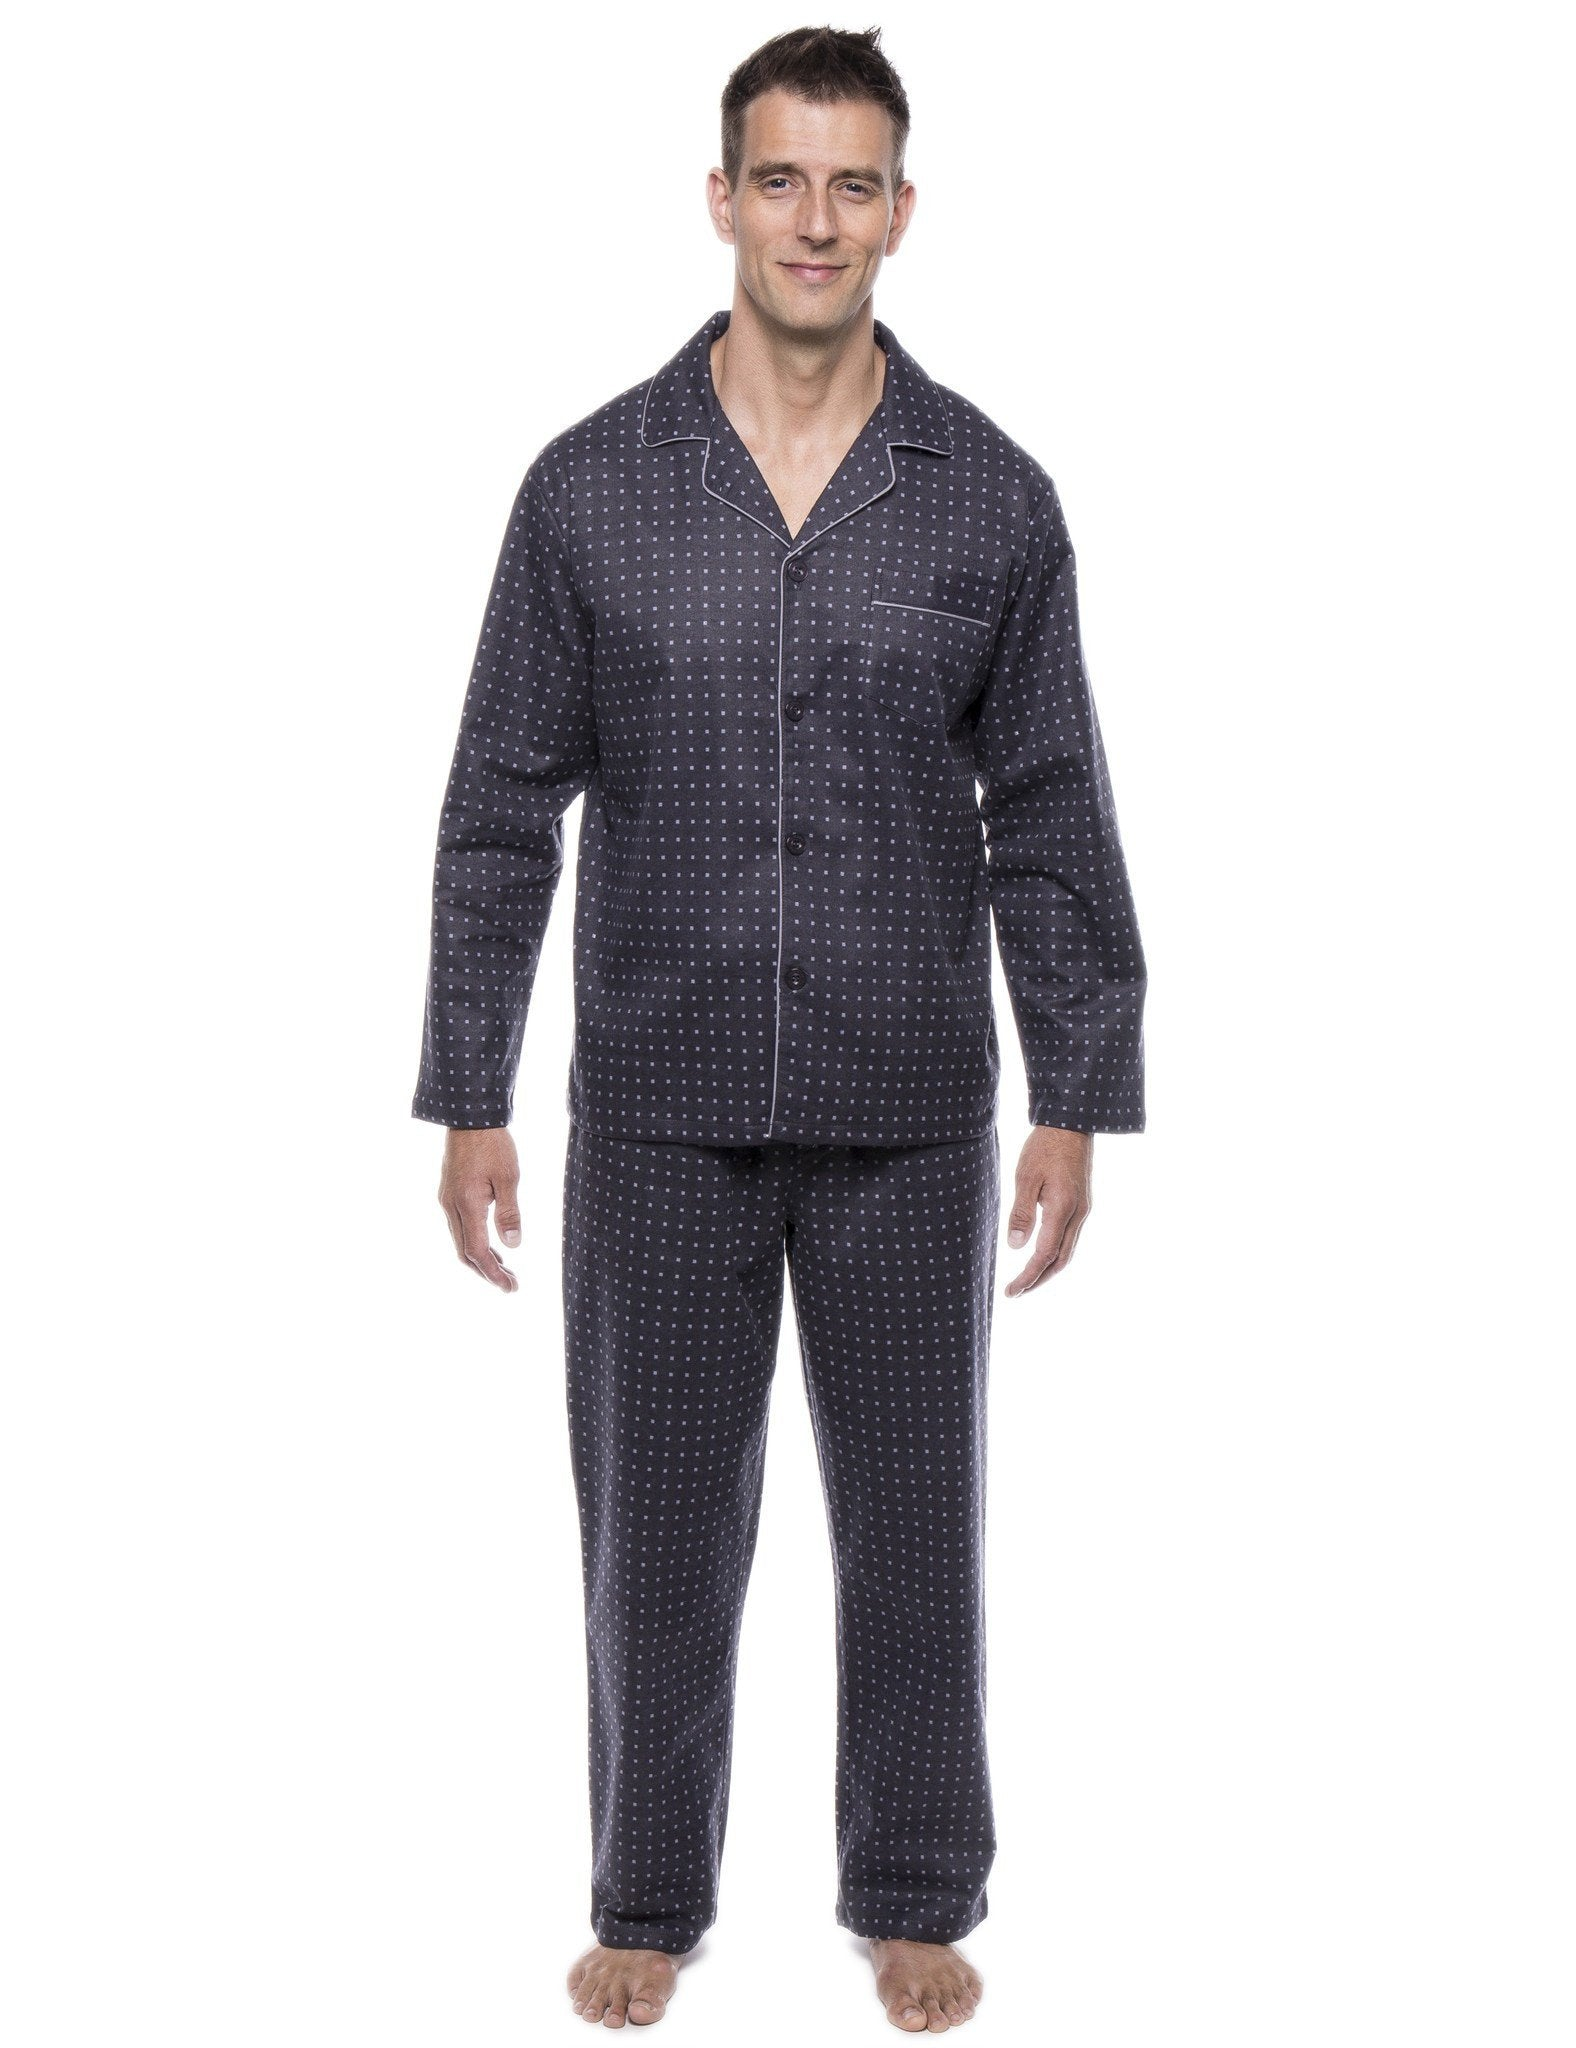 Men's 100% Cotton Flannel Pajama Set - Floating Squares Dark Grey